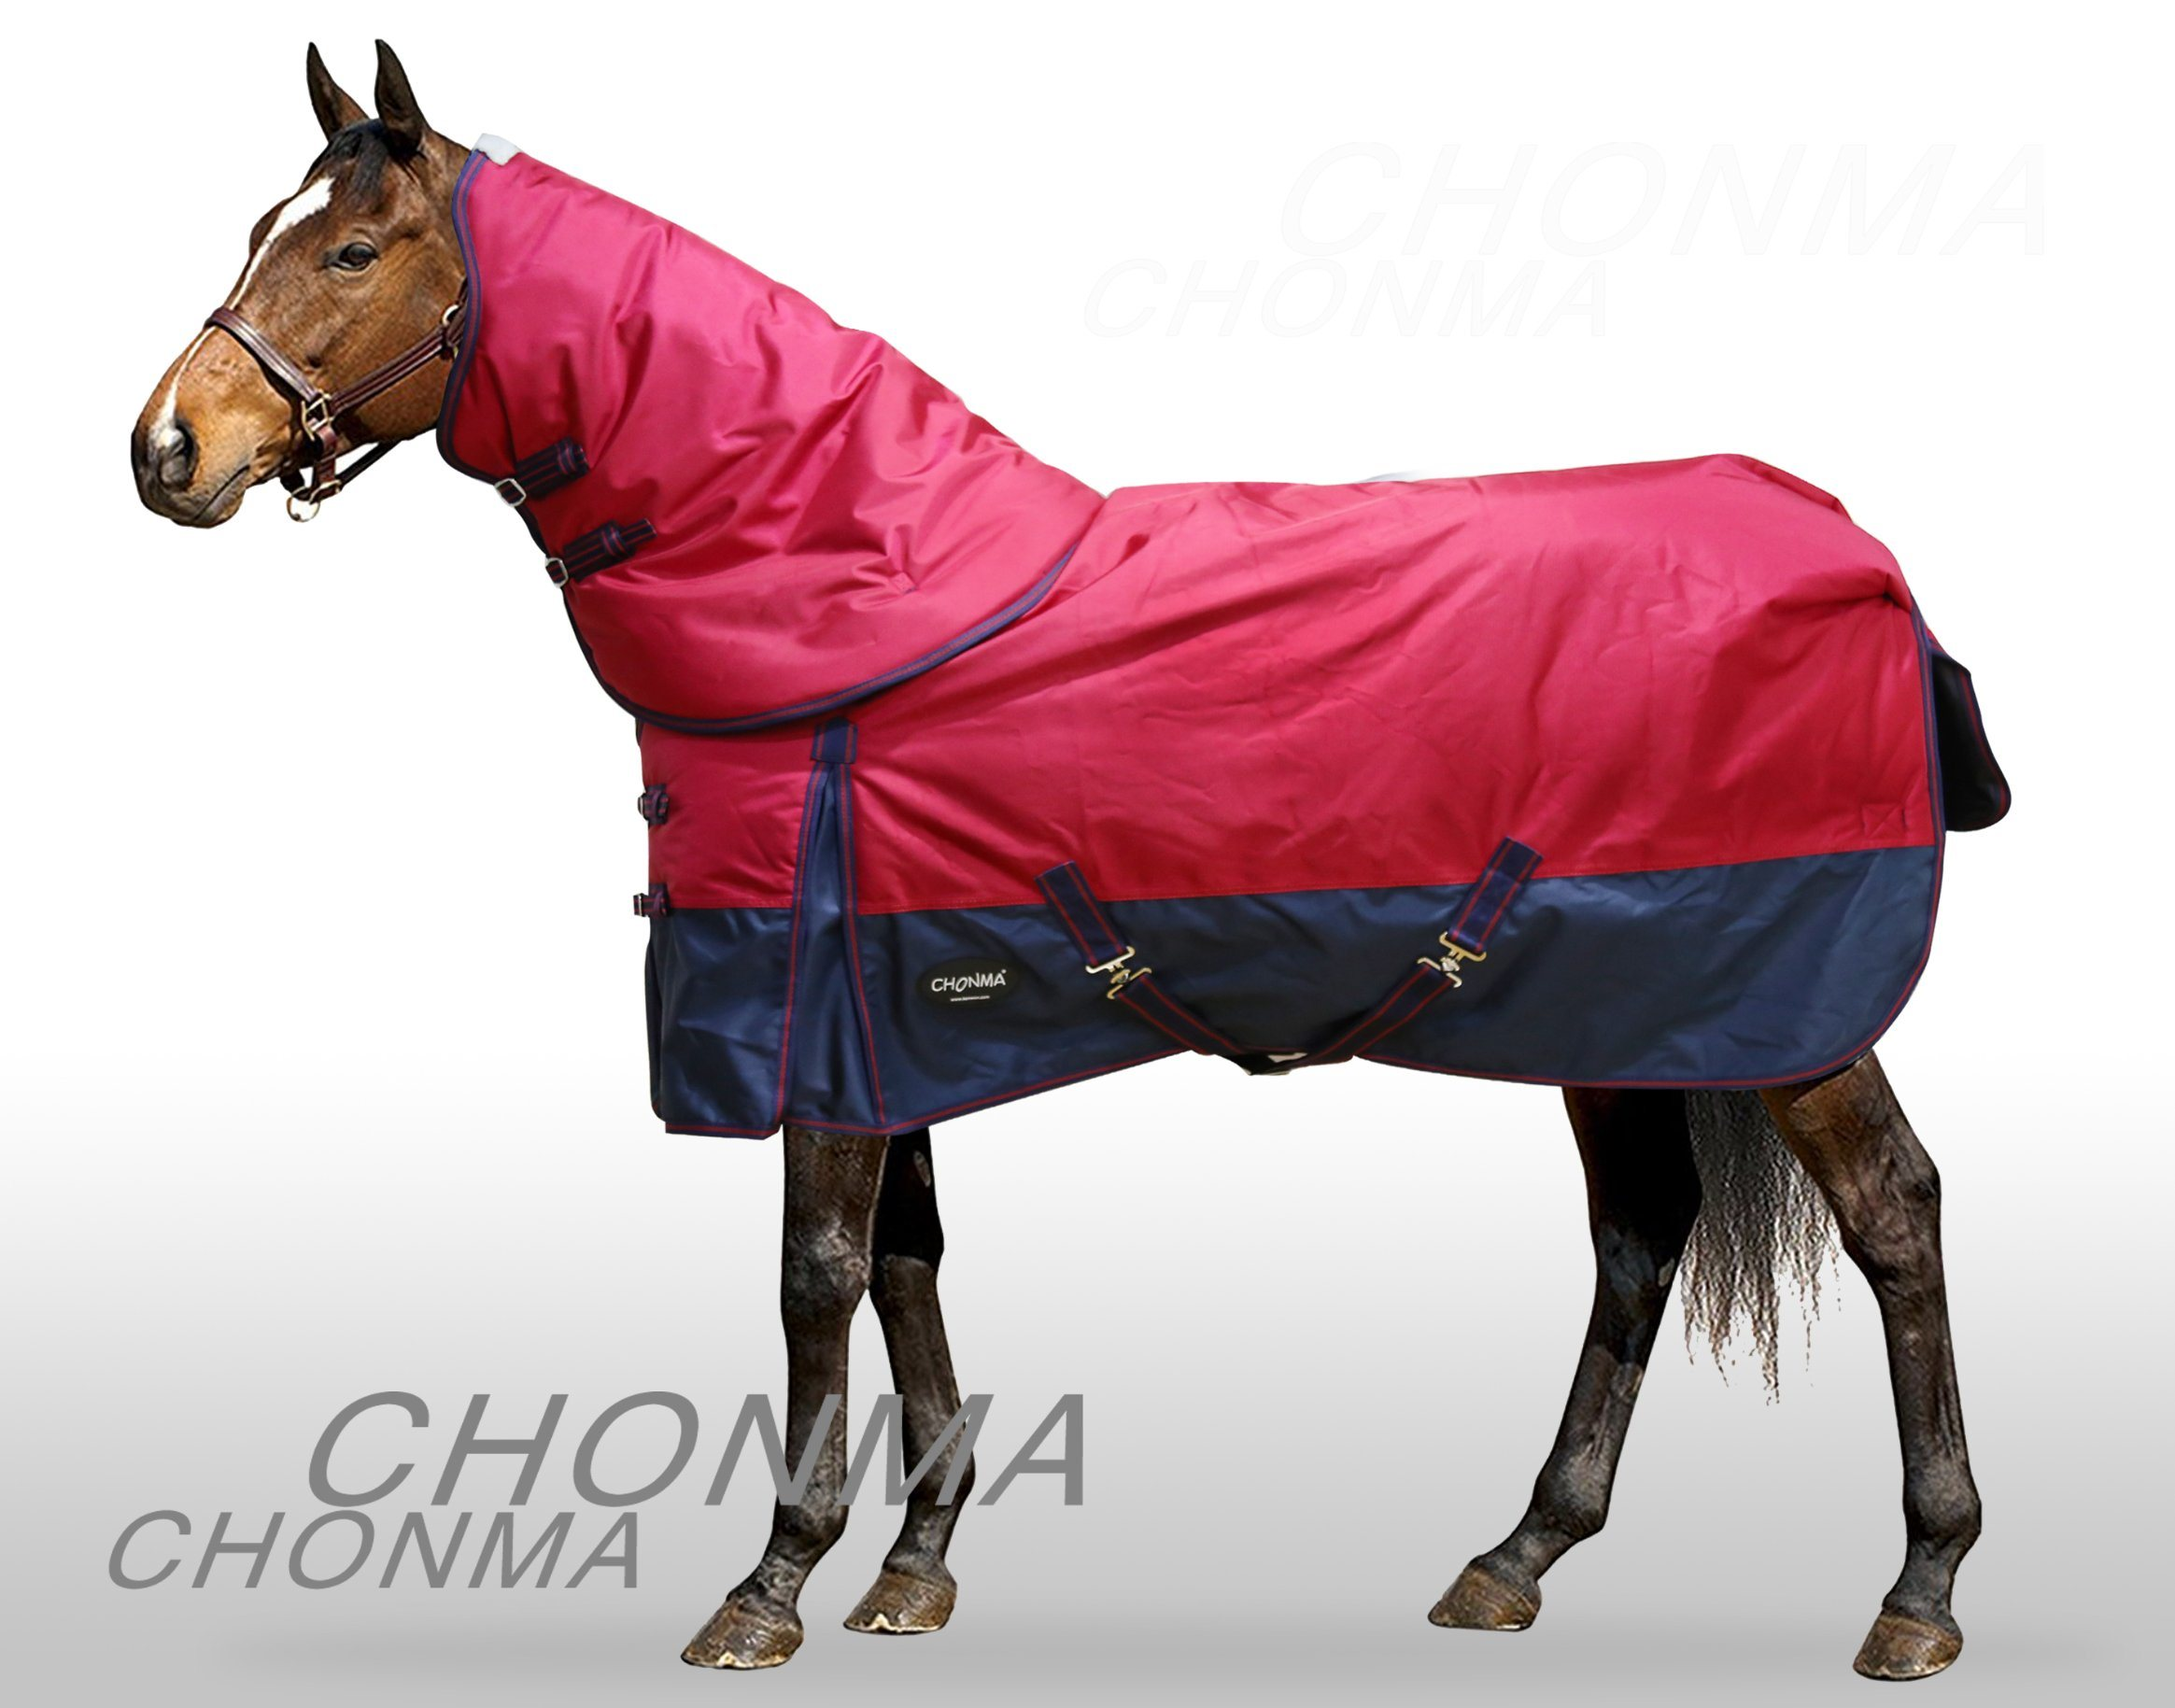 Hot Item New 1680d Waterproof And Breathable Winter Horse Rug With Detachable Neck Cover